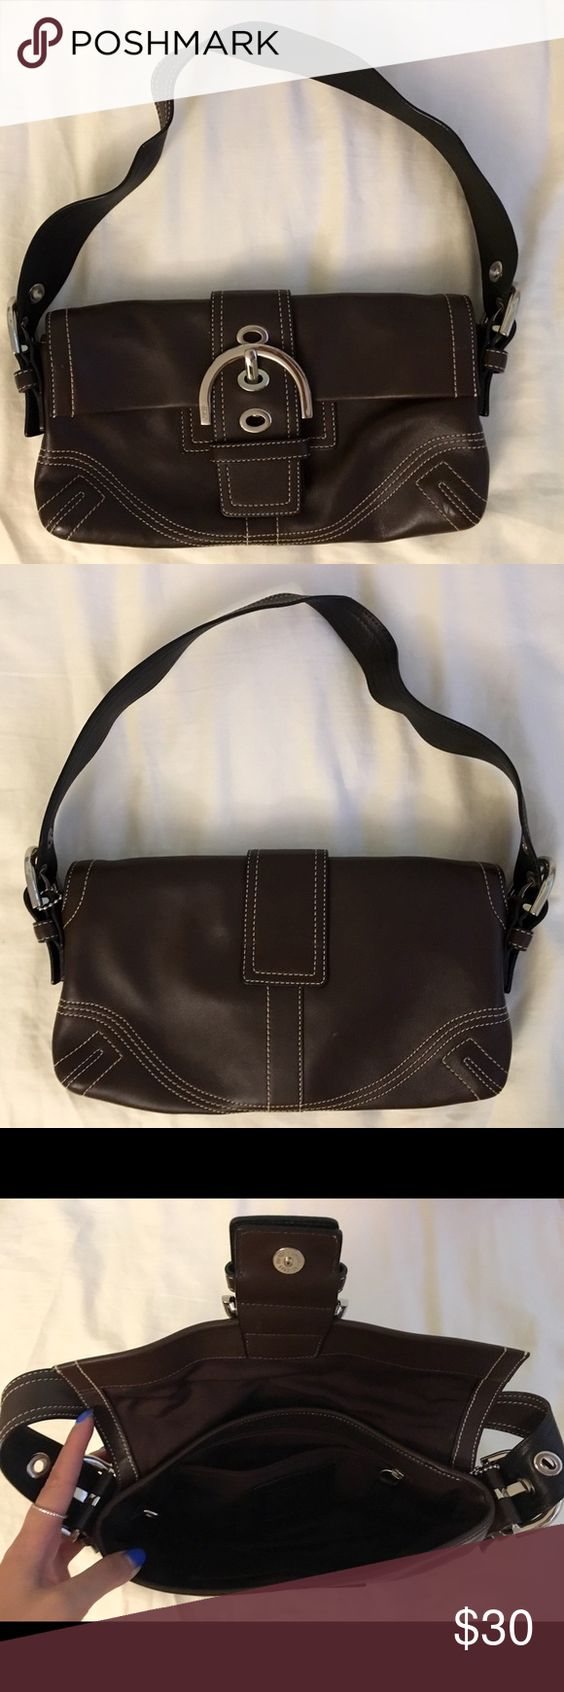 Dark Brown Coach Purse A small dark brown coach purse to compliment your casual brunch outfit! It has only been used once or twice so it is in great condition! Coach Bags Mini Bags